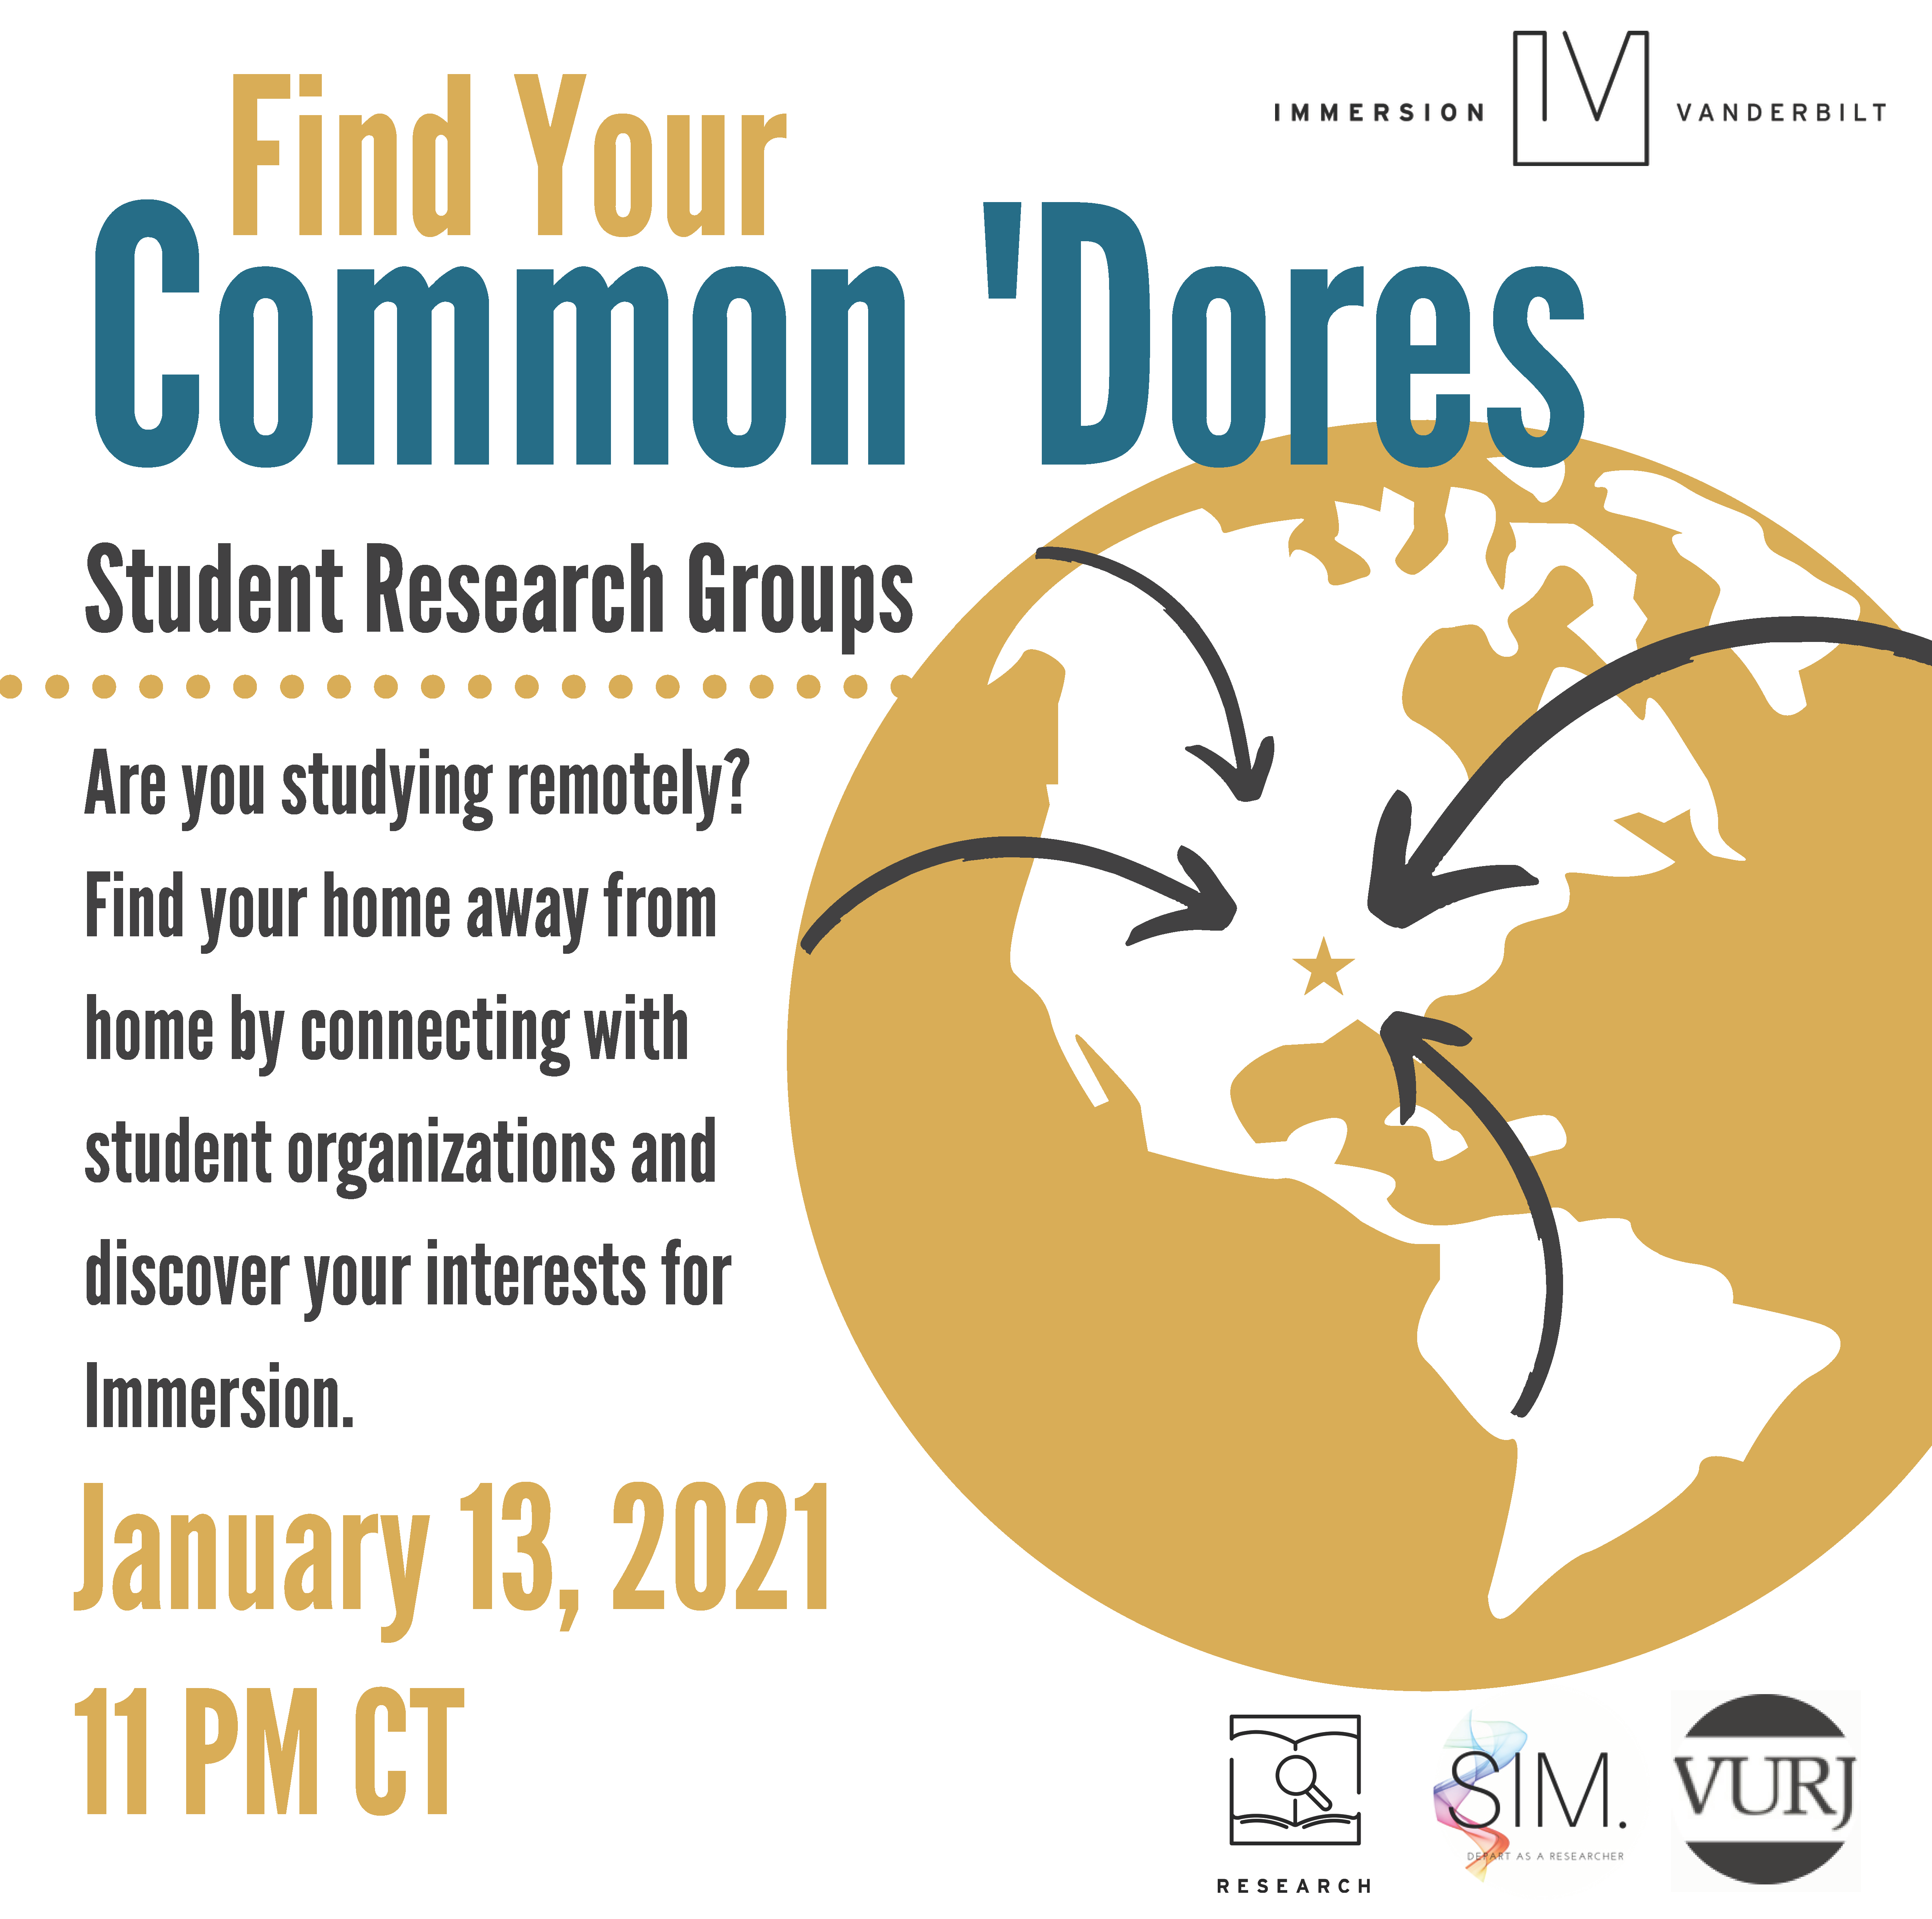 International Student Research Event Flyer 12.3.20